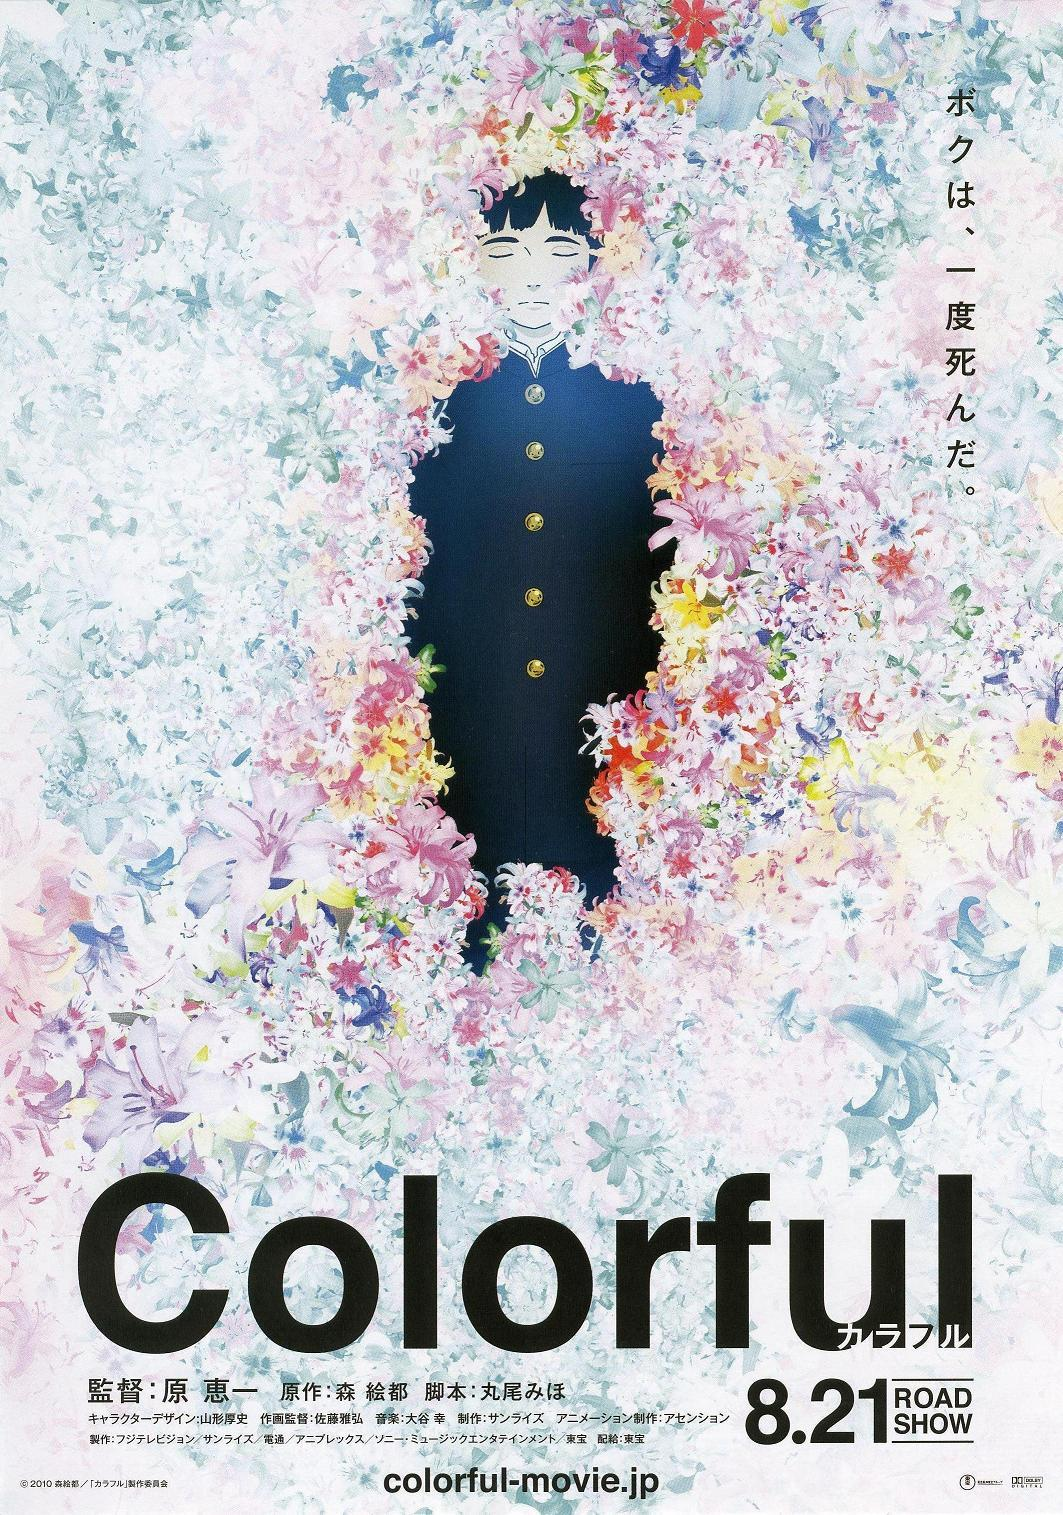 Colorful movie poster